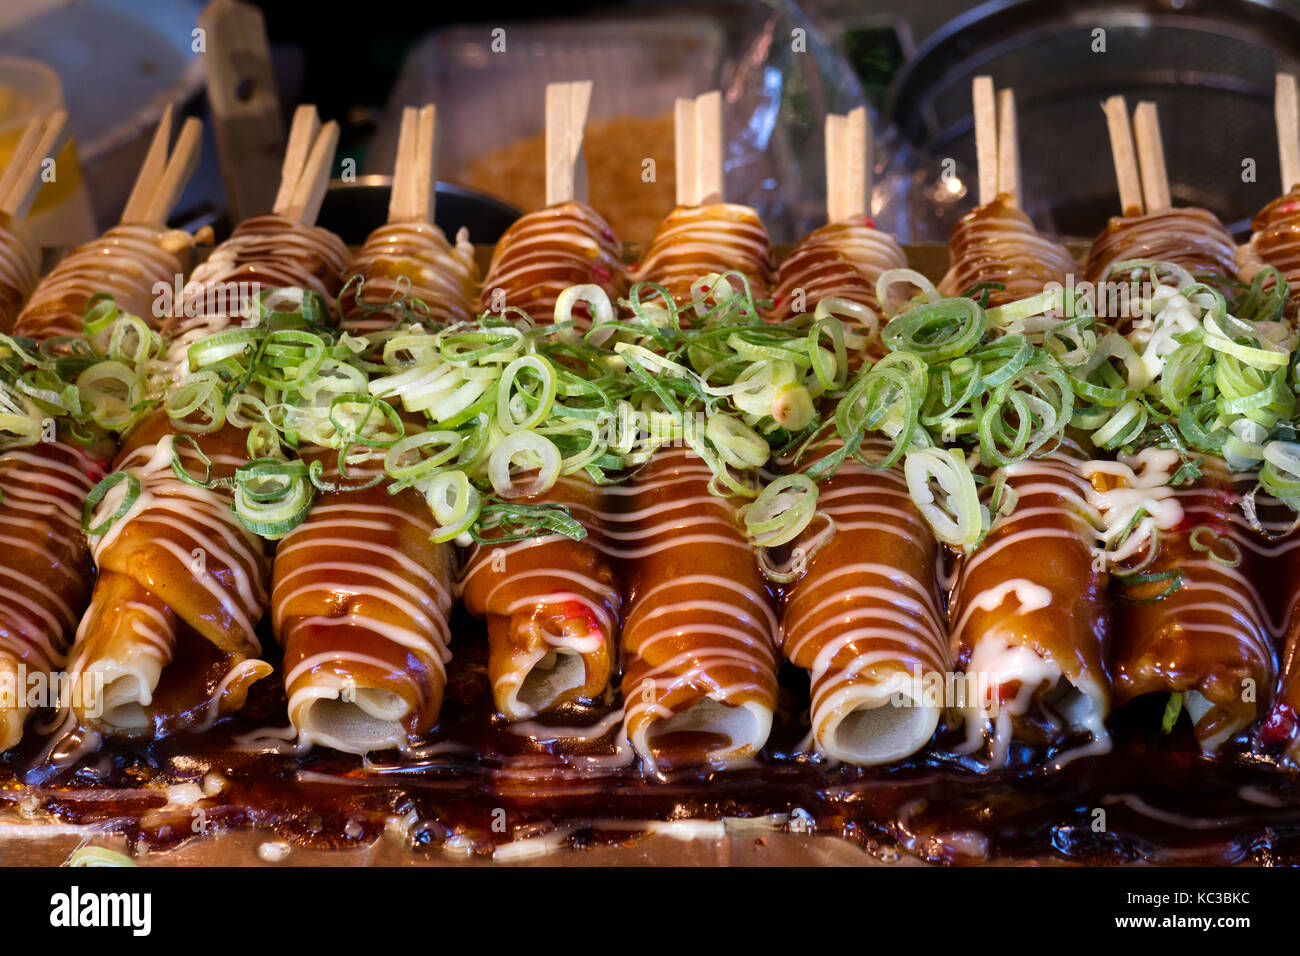 Kyoto, Japan - May 18, 2017: Baking Hashimaki,  okonomiyaki on sticks with fresh spring onions as a snack - Stock Image